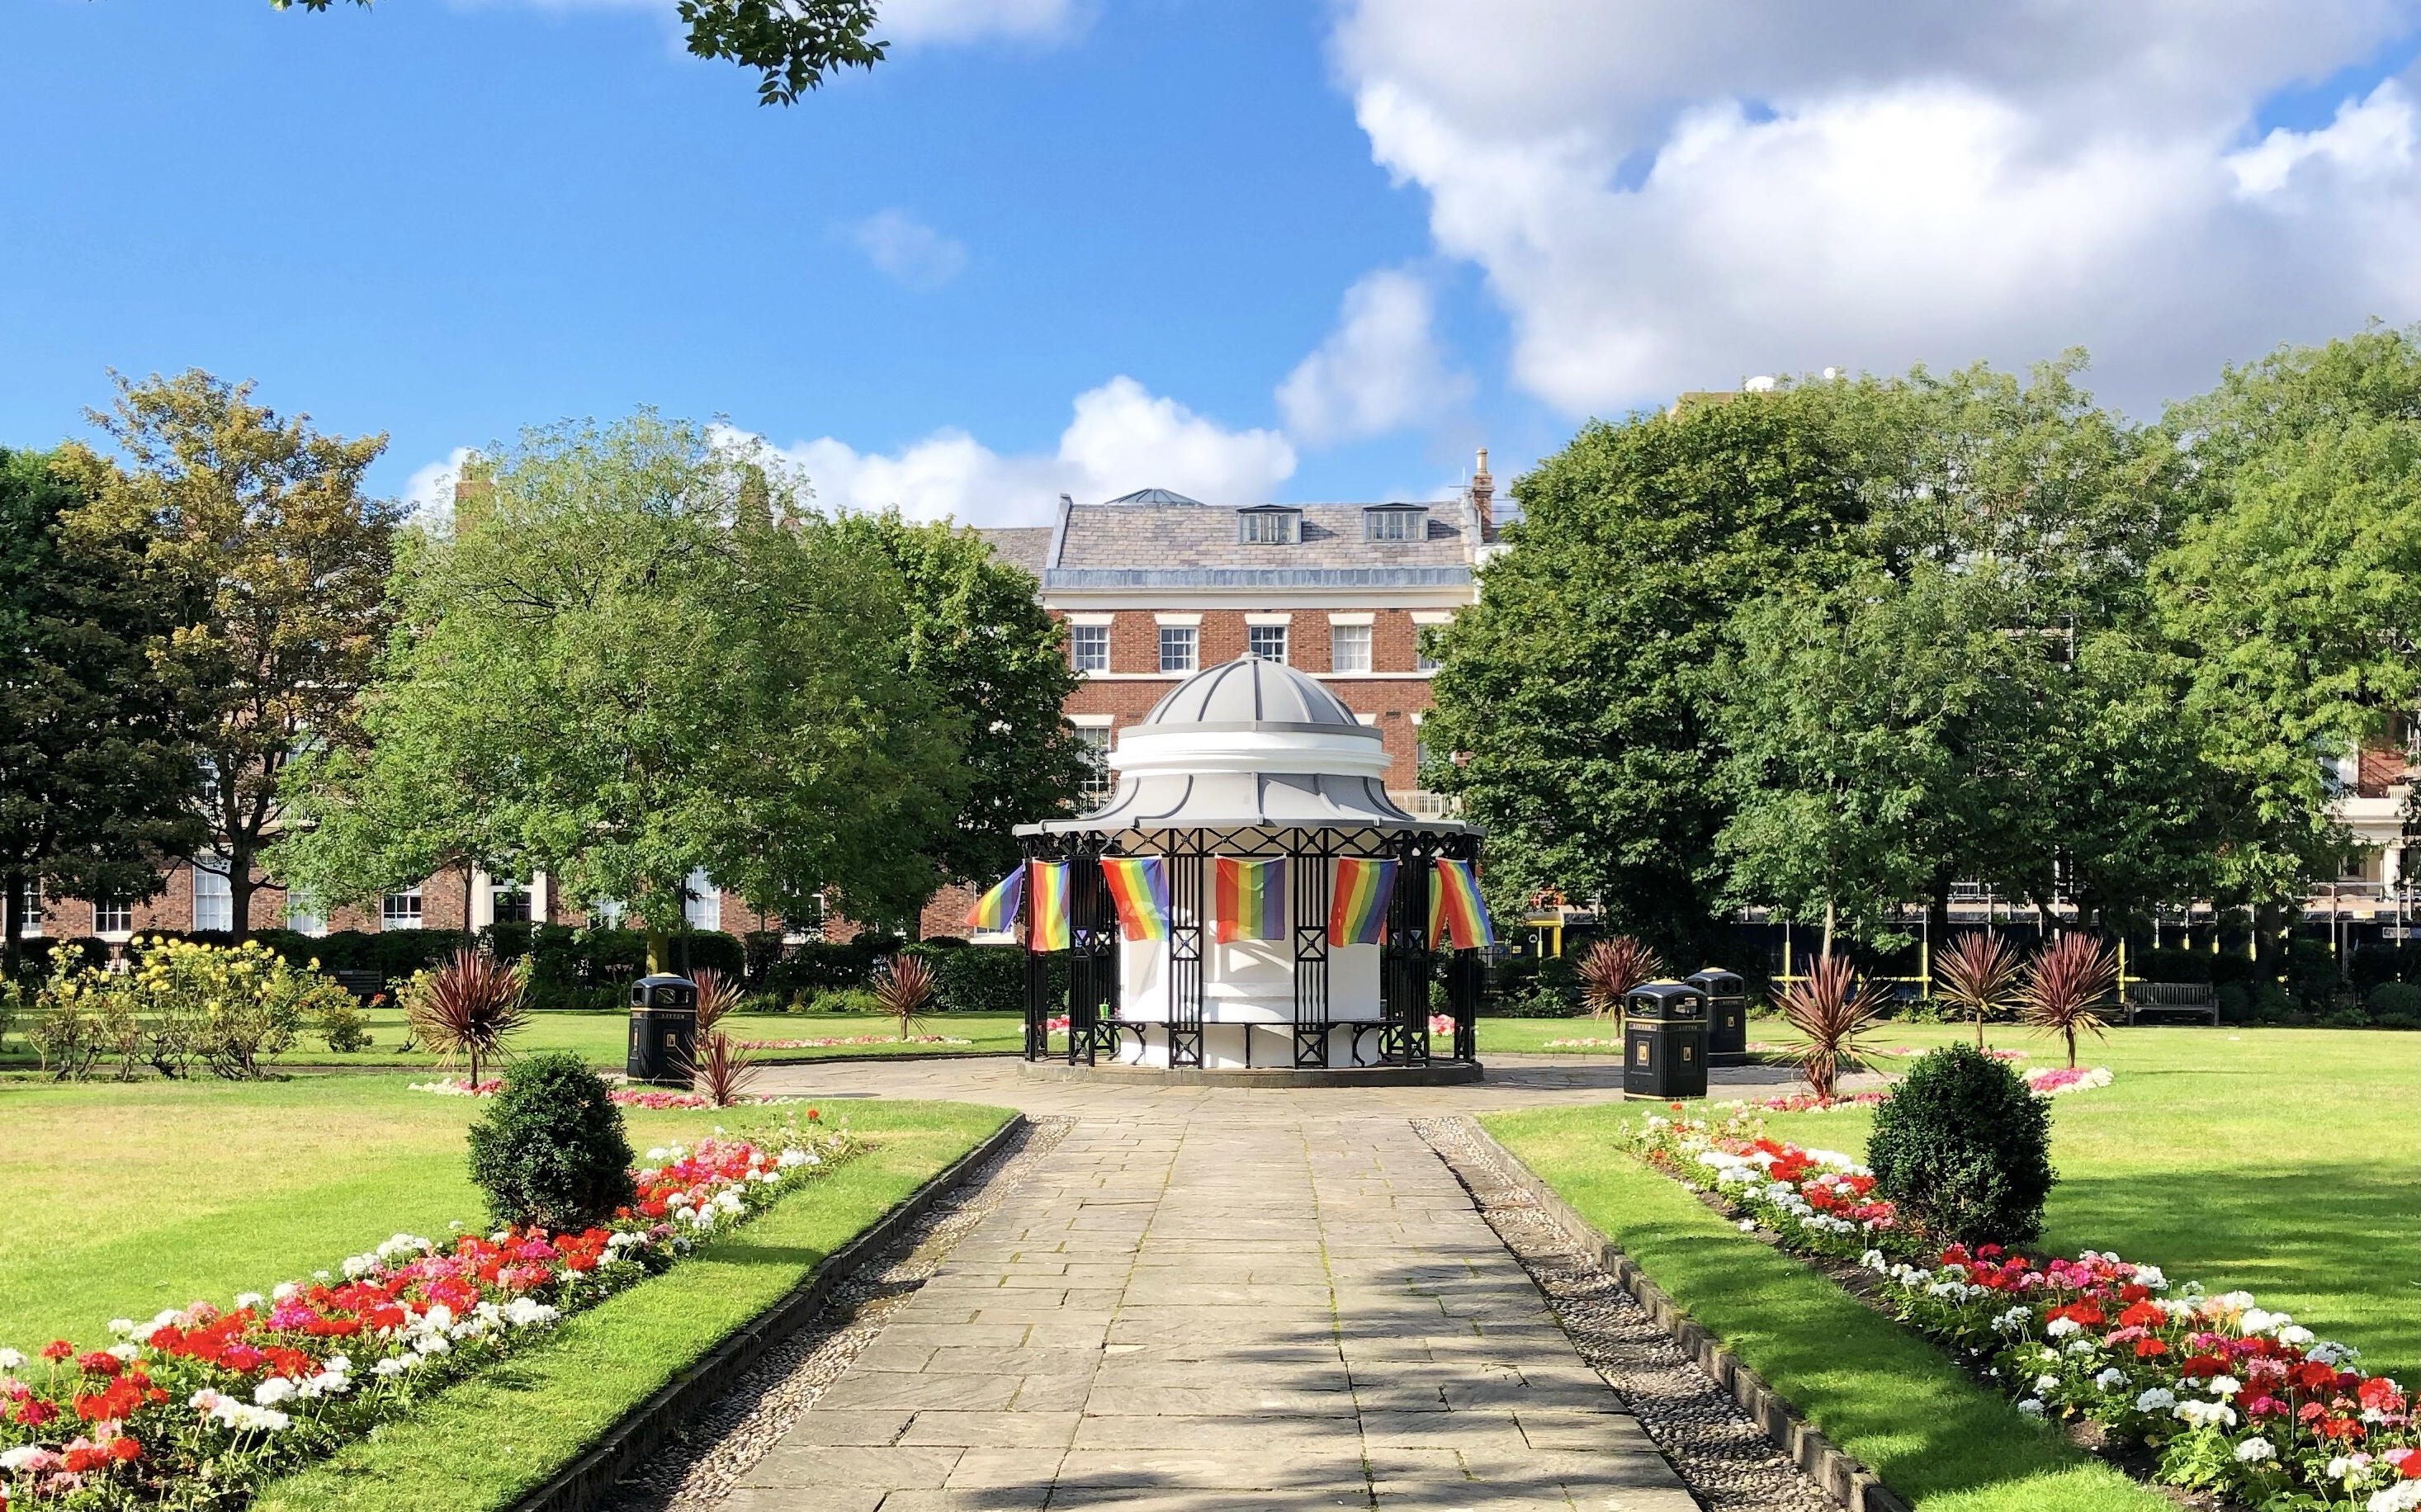 Rainbow Pride flags hanging in Abercromby Square